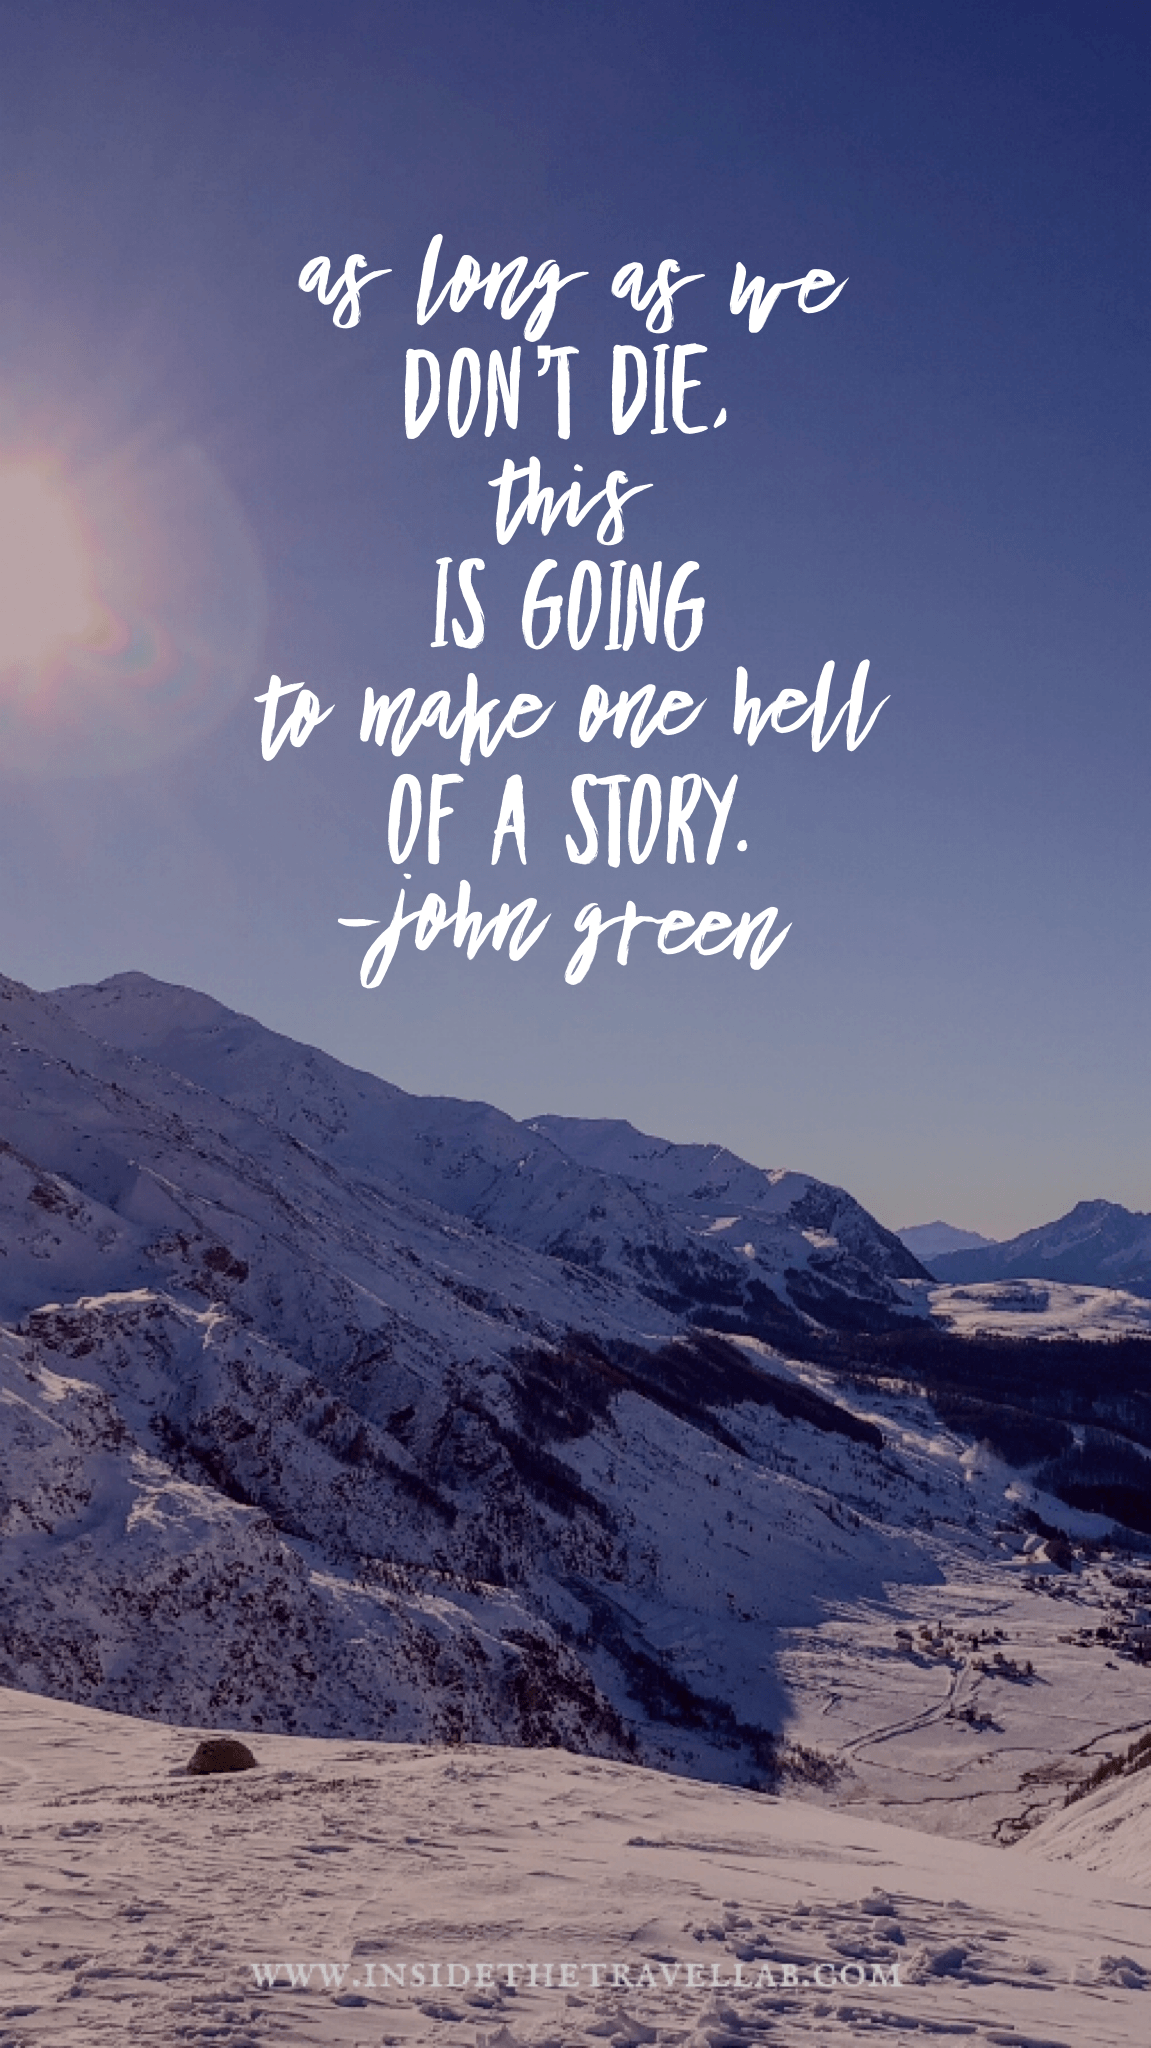 Best Travel Quotes - as long as we don't die this is going to be one hell of a story